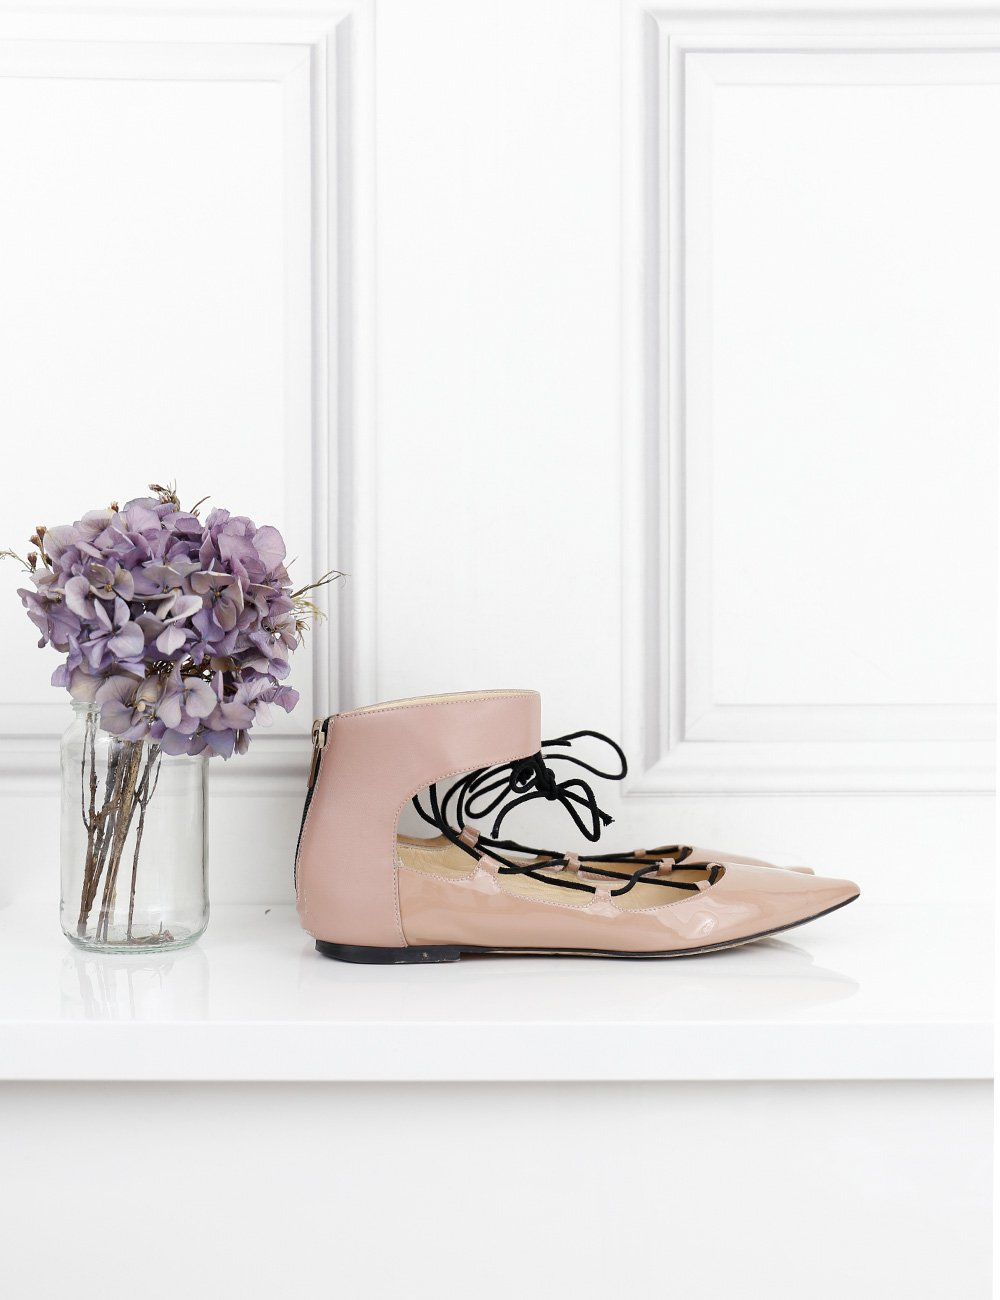 Jimmy Choo pink pointed toe flat ballerinas with laces 6UK- My Wardrobe Mistakes